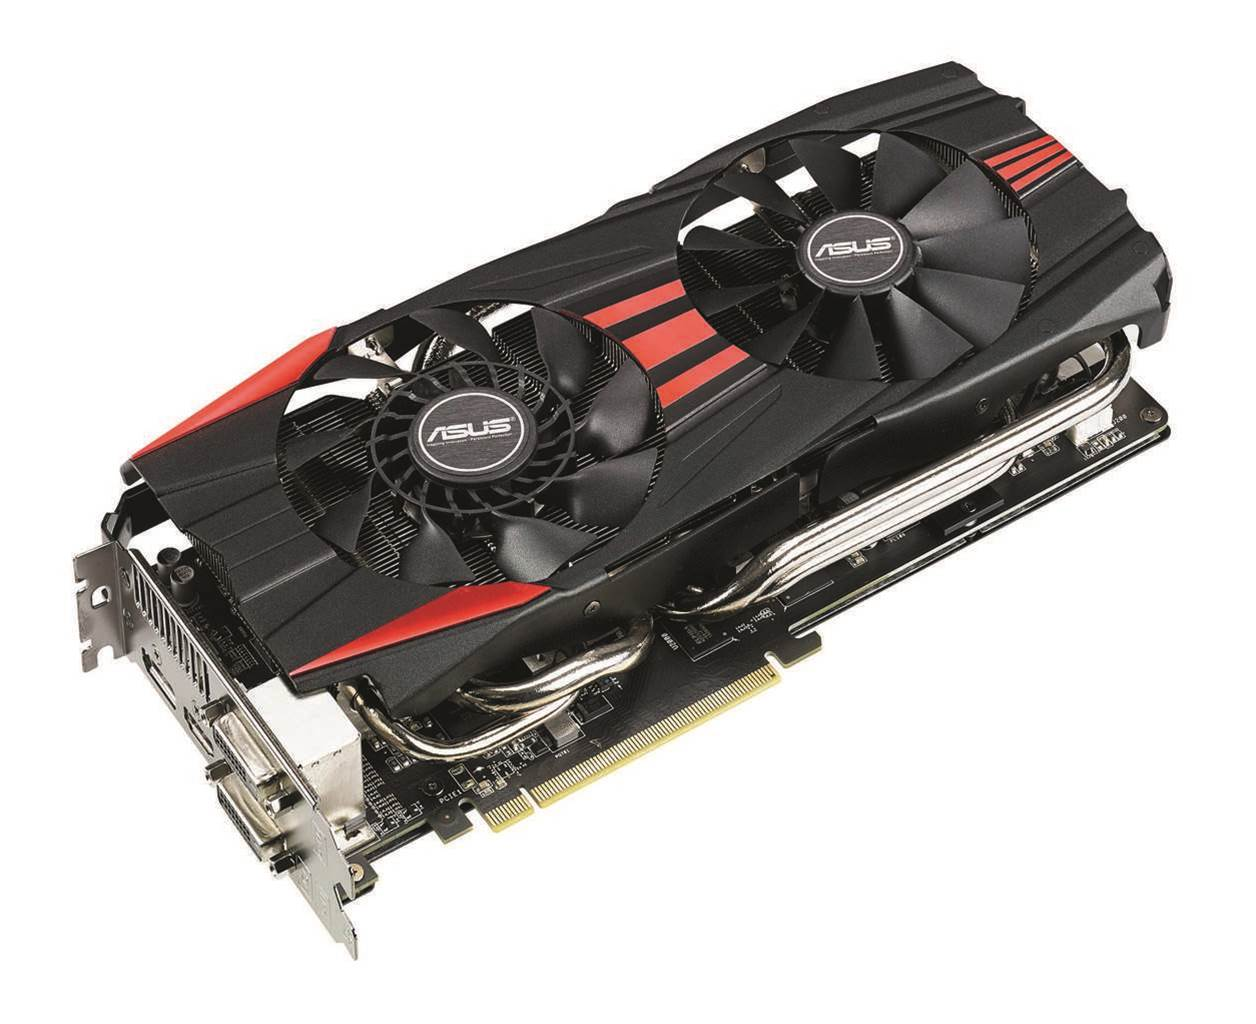 Review: ASUS Poseidon Platinum GTX 780